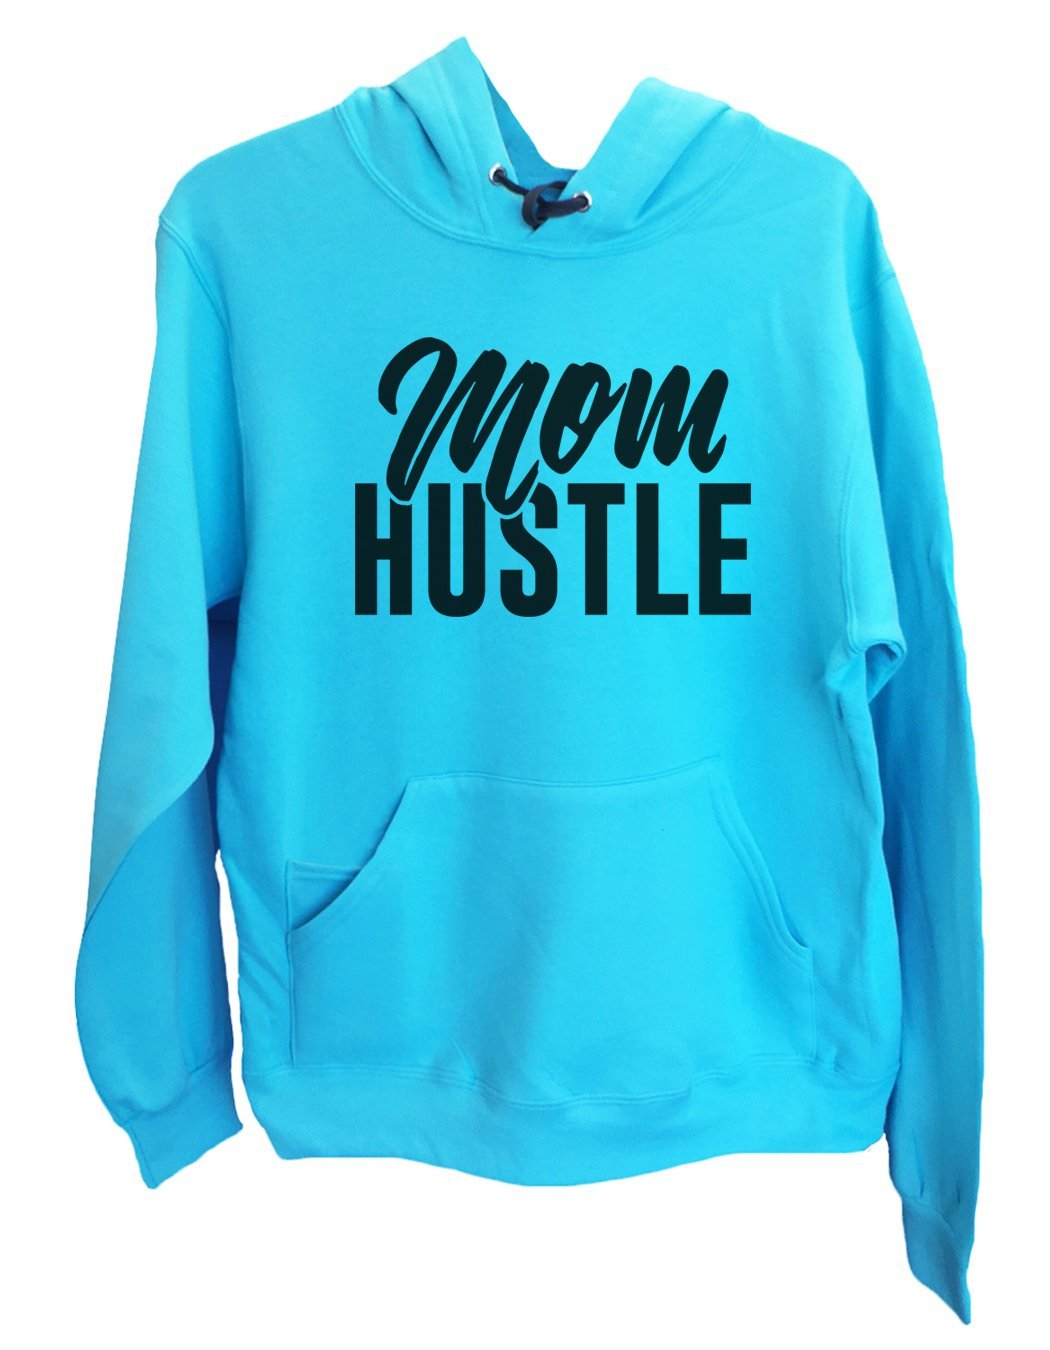 UNISEX HOODIE - Mom Hustle - FUNNY MENS AND WOMENS HOODED SWEATSHIRTS - 2178 Funny Shirt Small / Turquoise